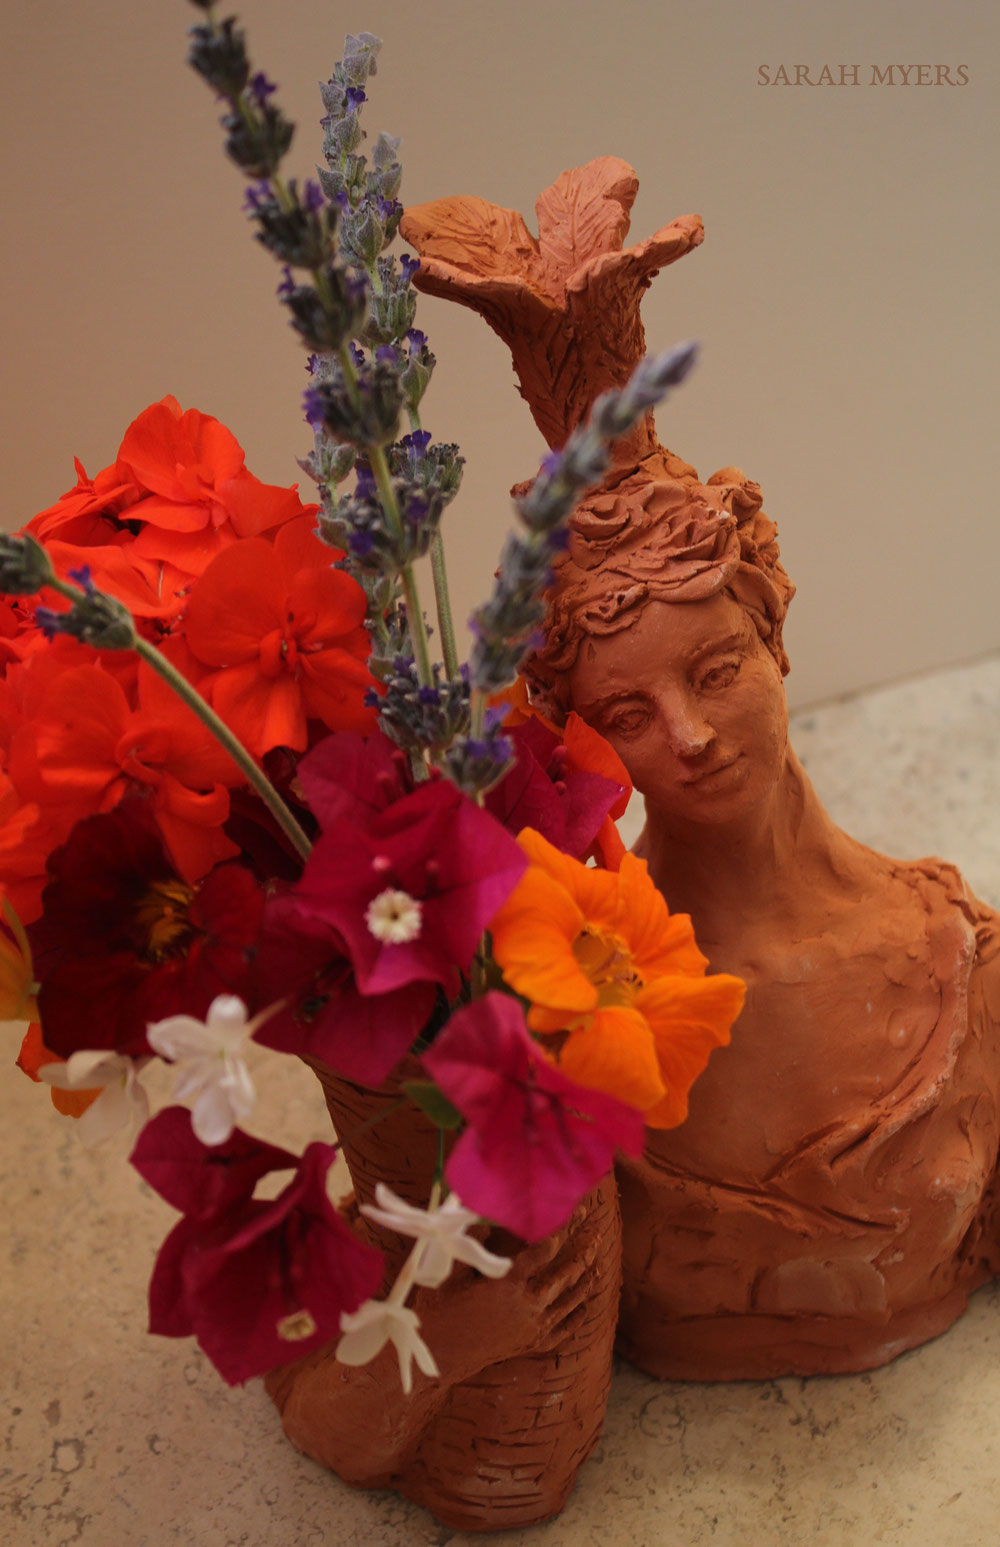 Lady with Plumes and Basket, sculpture by Sarah Myers